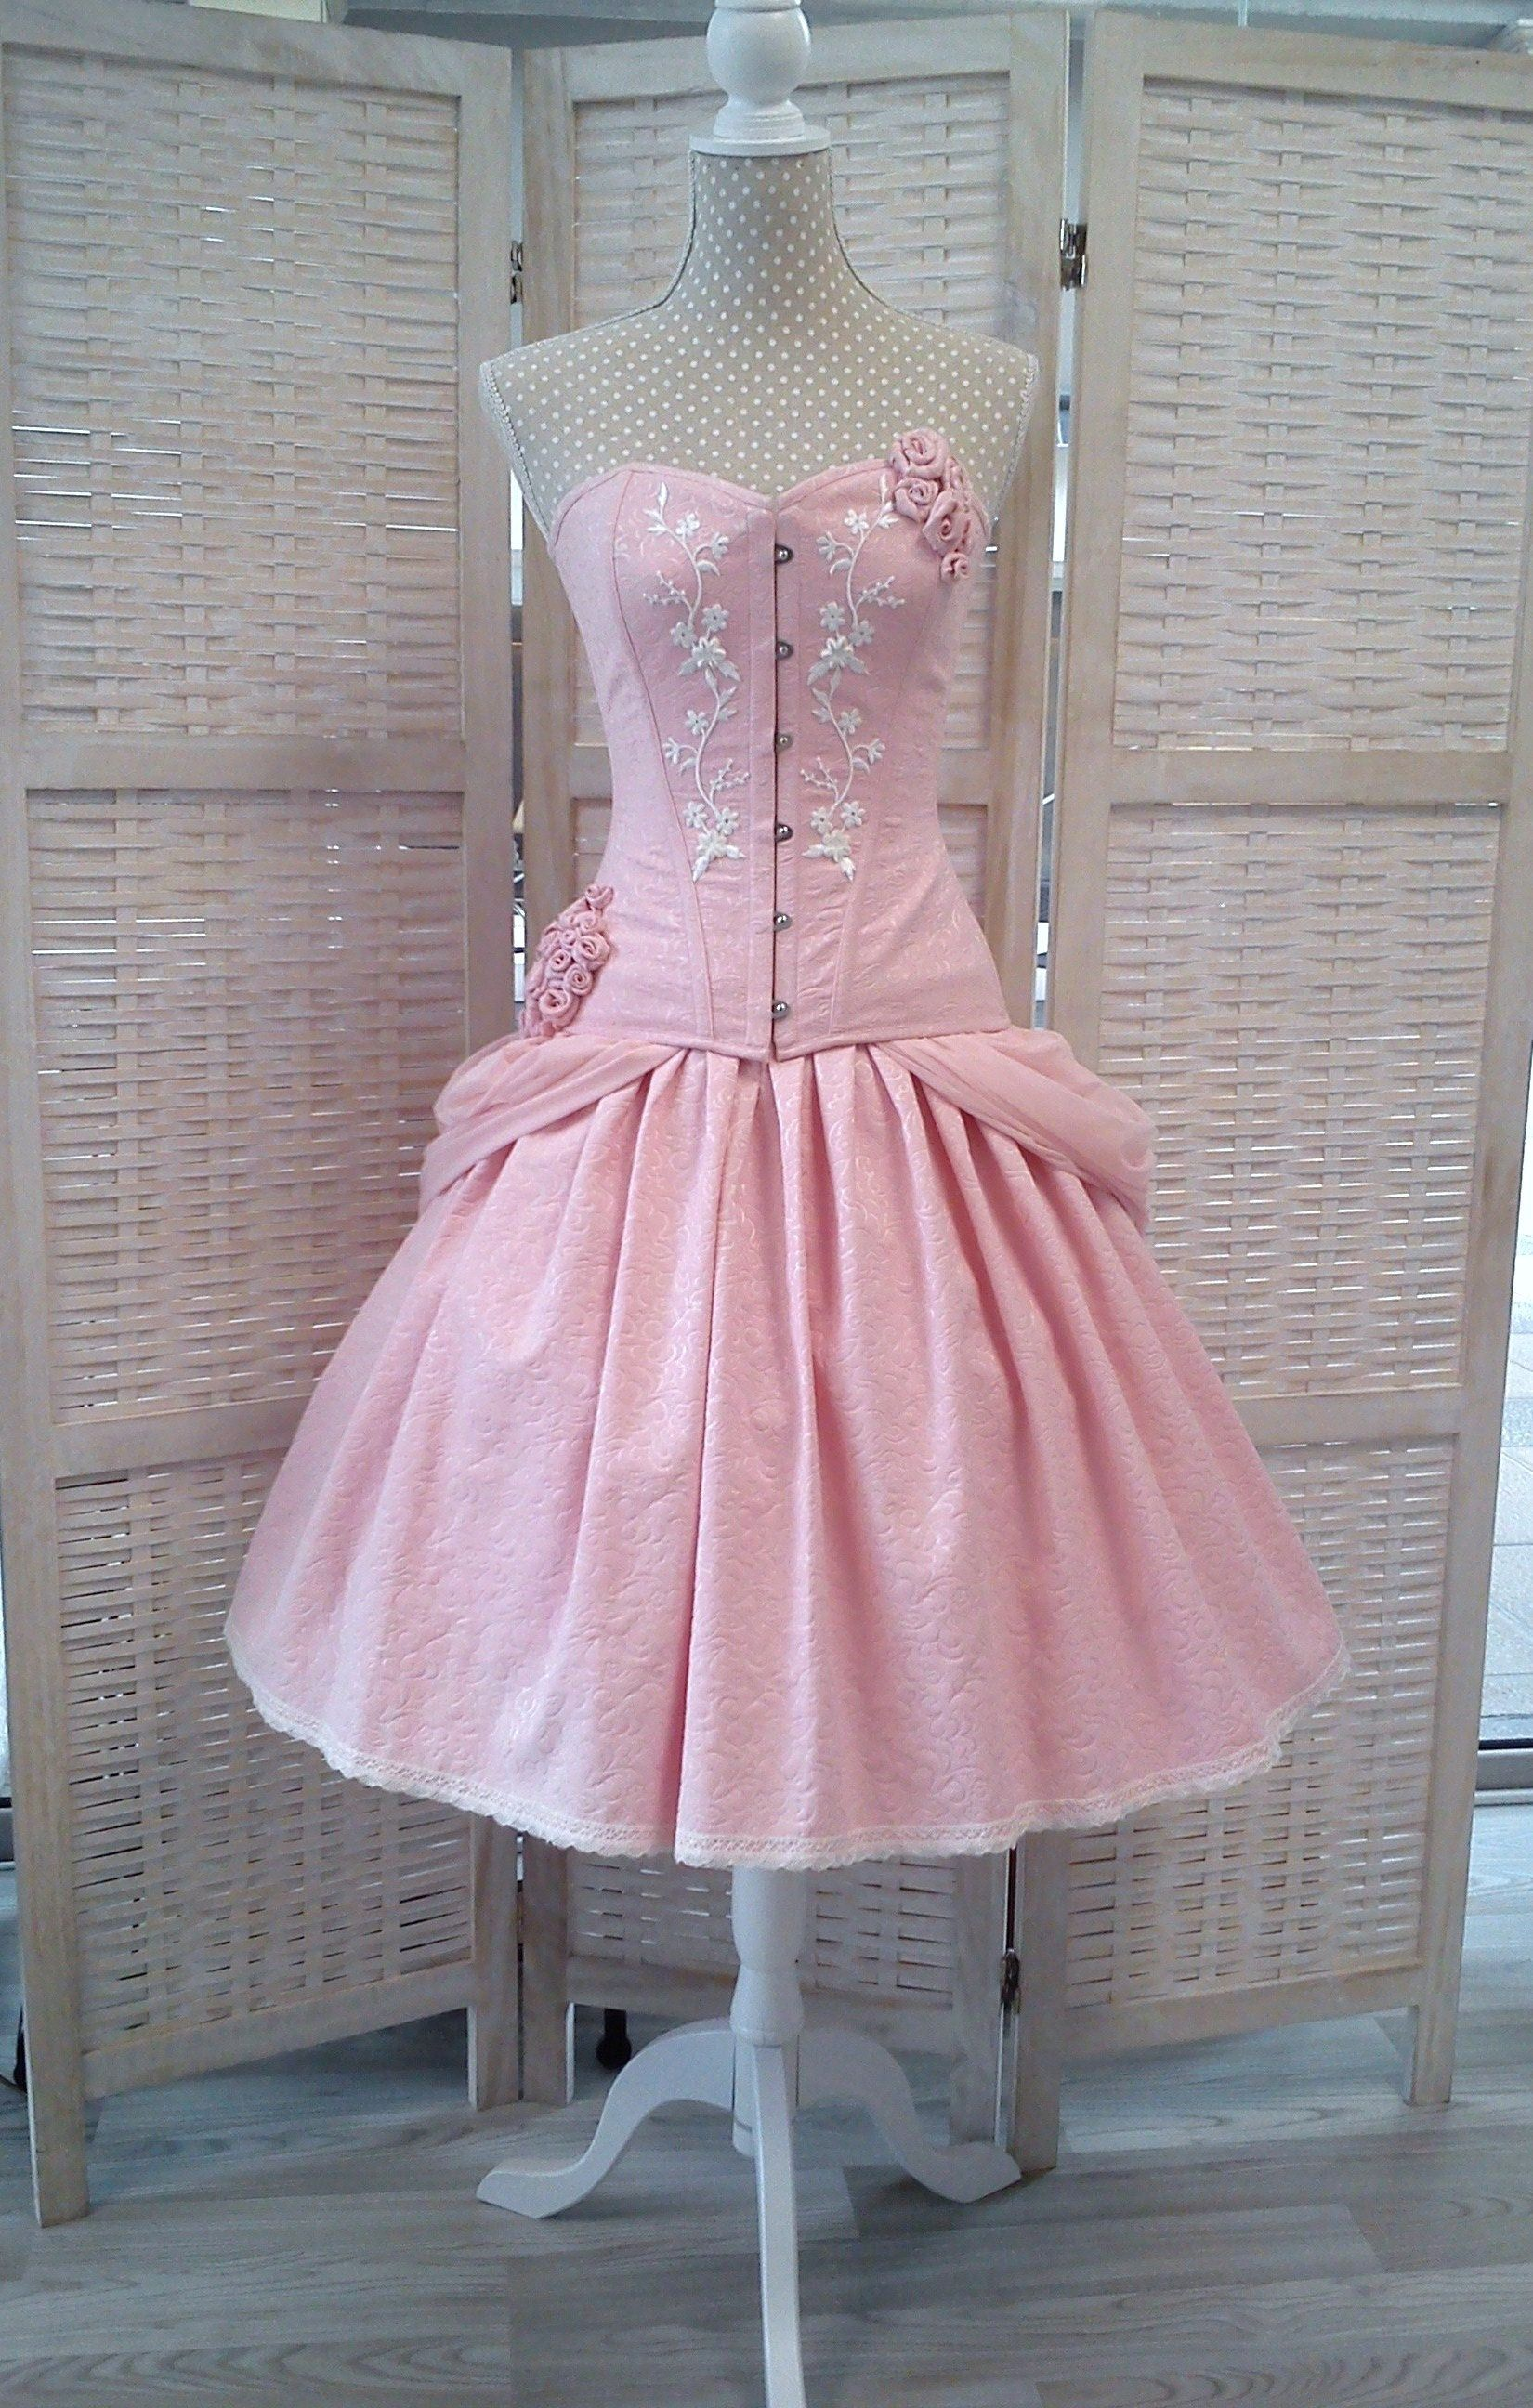 Fantasy short ball princess wedding skirt - Pink brocade skirt ...